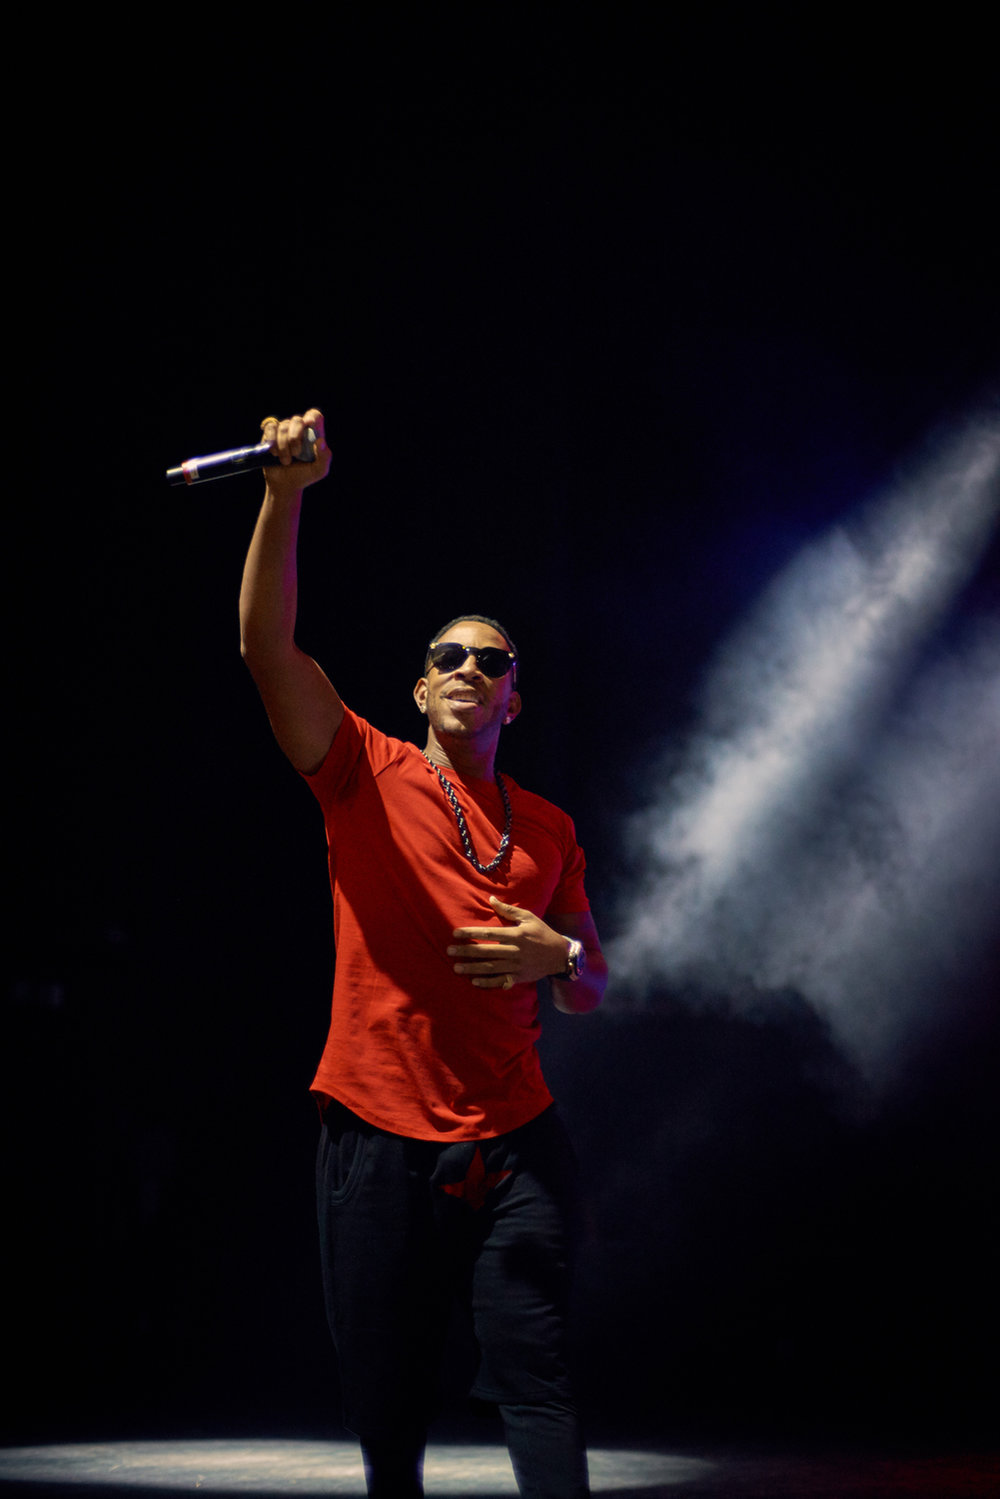 LLL_3098_Ludacris-Live-at-Eventim-Apollo-March-2017.jpg